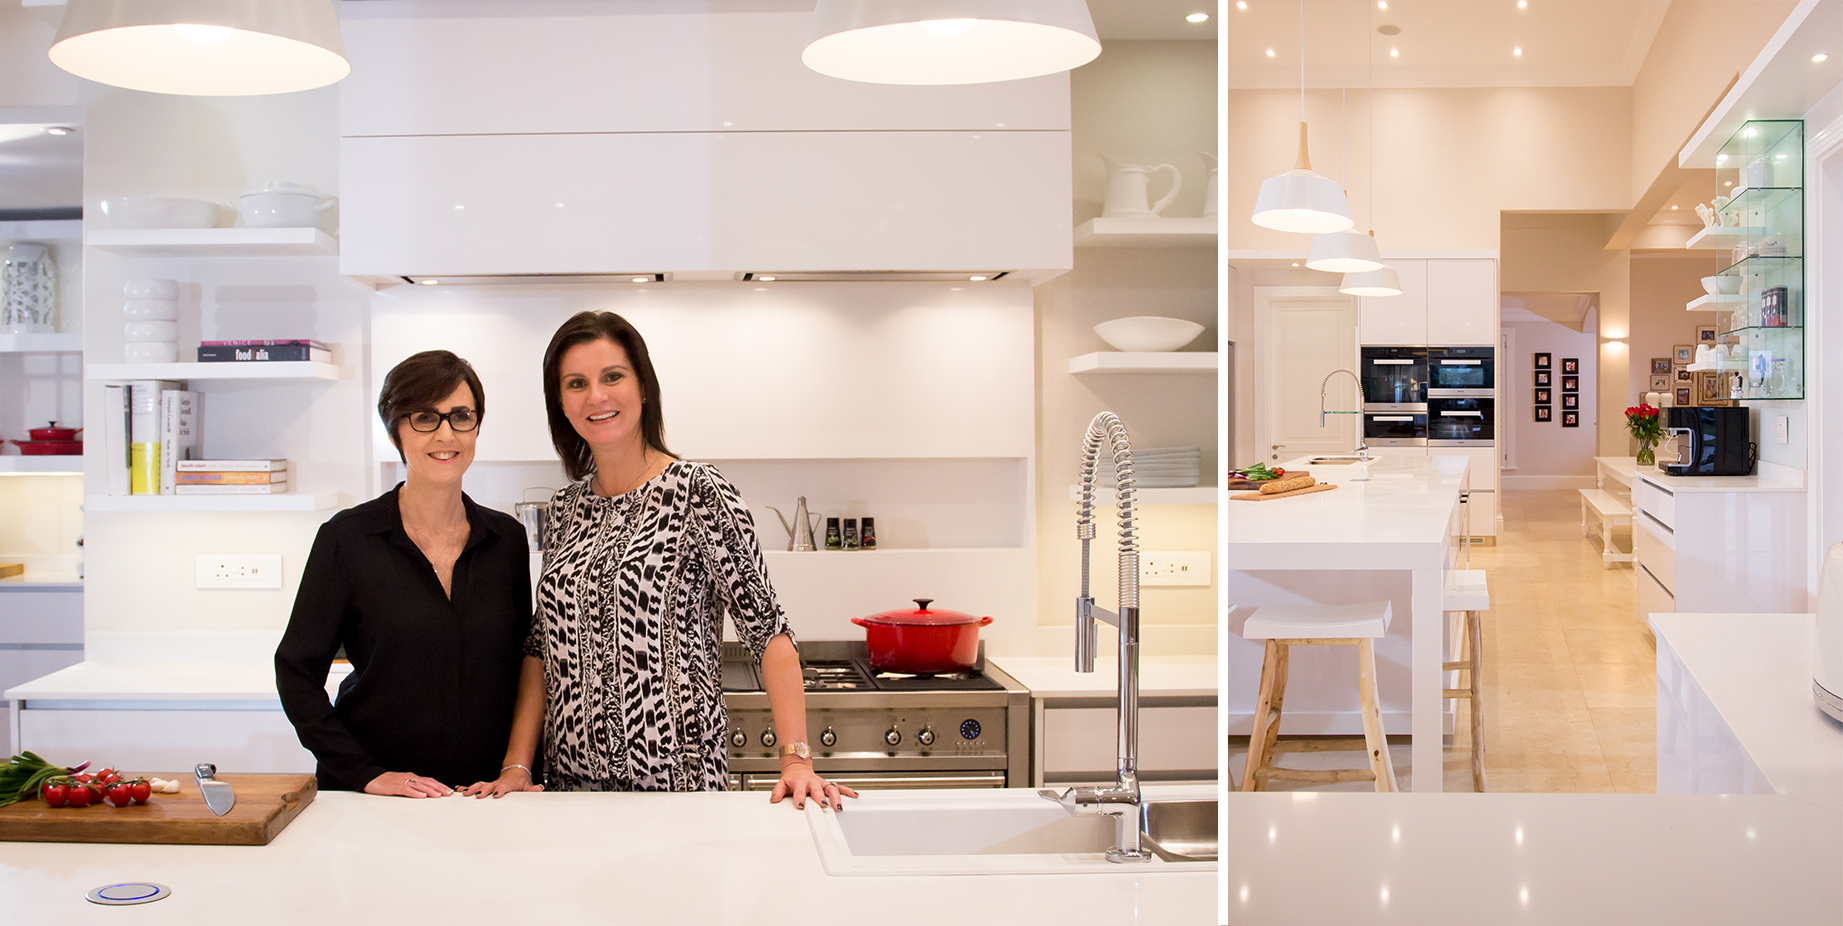 Kim walked Tania through the designing process step by step to create her ultimate kitchen design with Pure White Caesarstone surfaces.